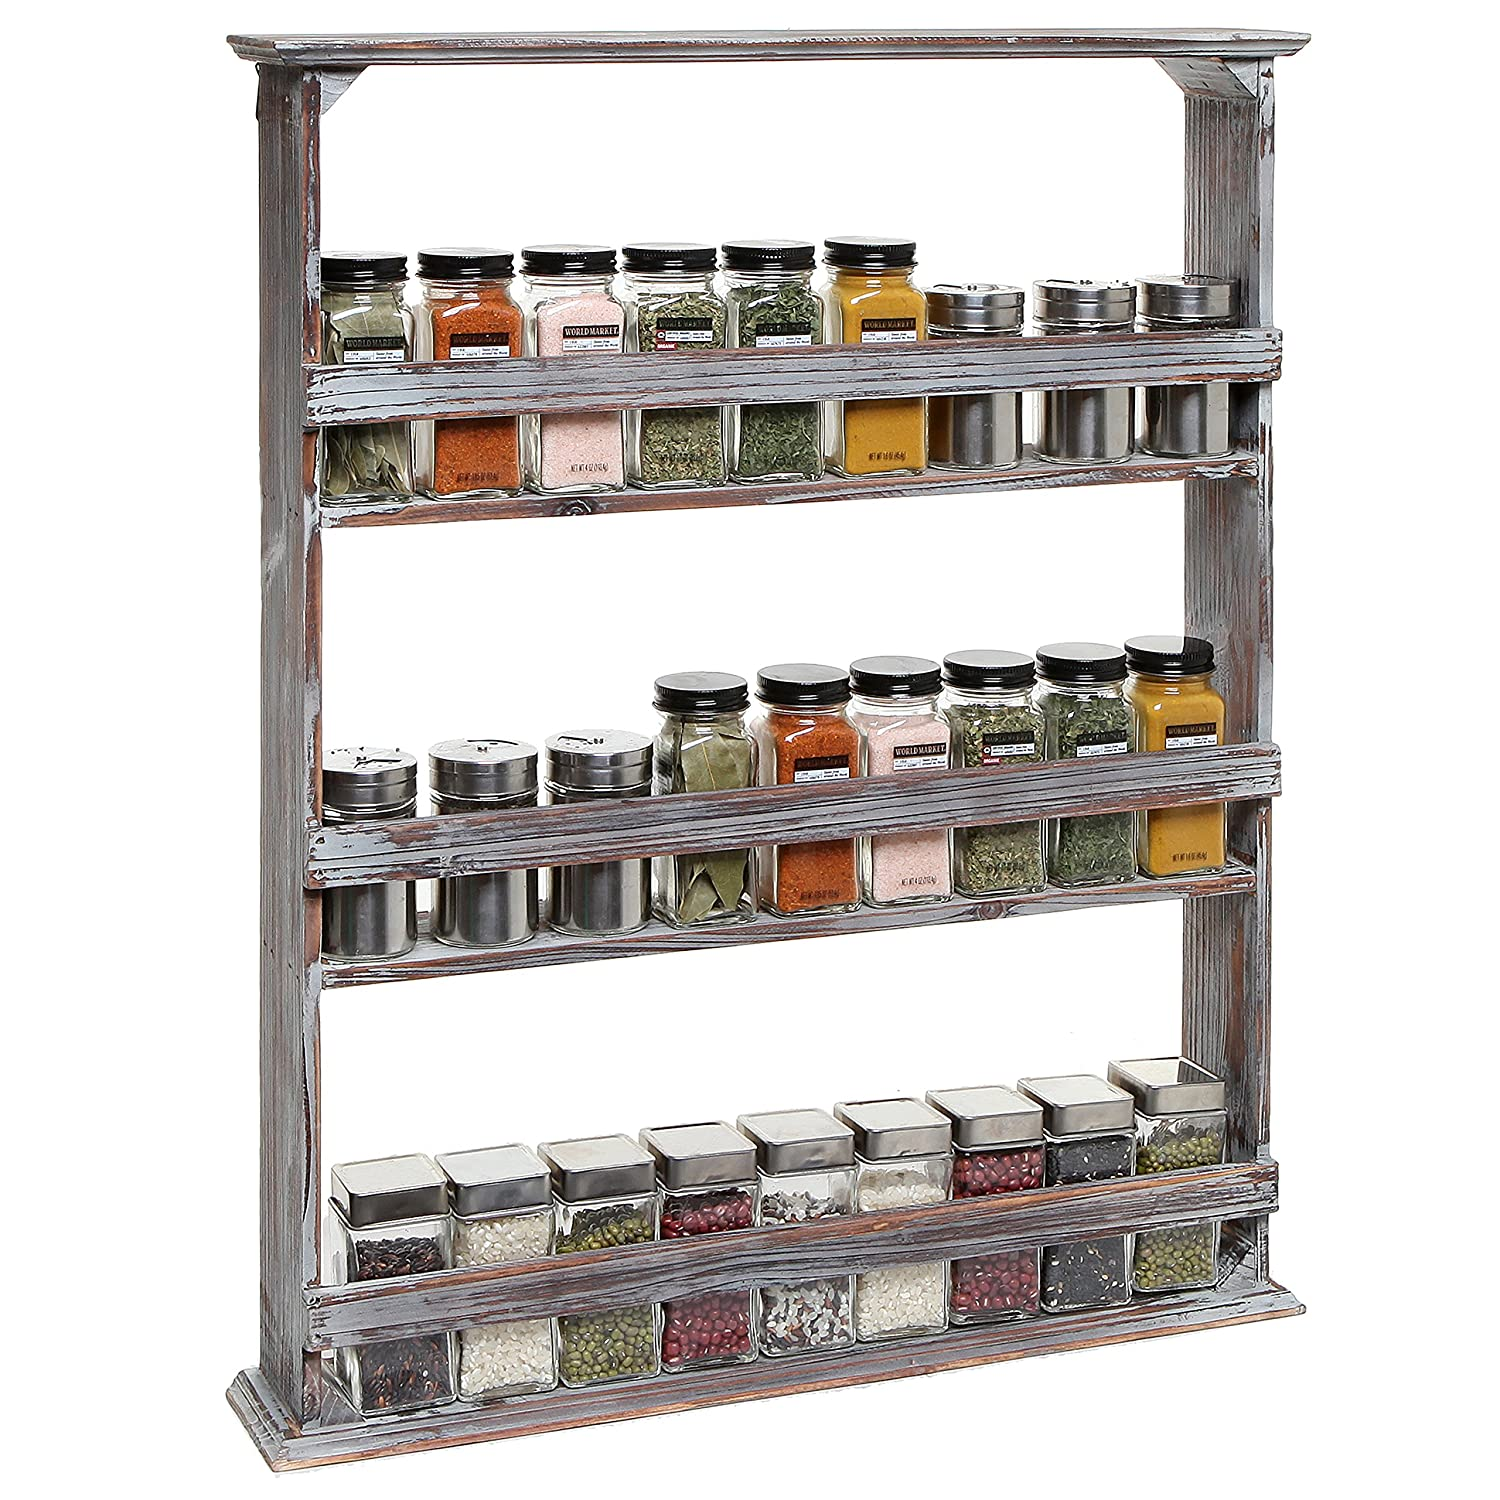 Kitchen Shelves Wall Mounted: Kitchen Wall Mounted Racks: Spice Racks & Pot Racks